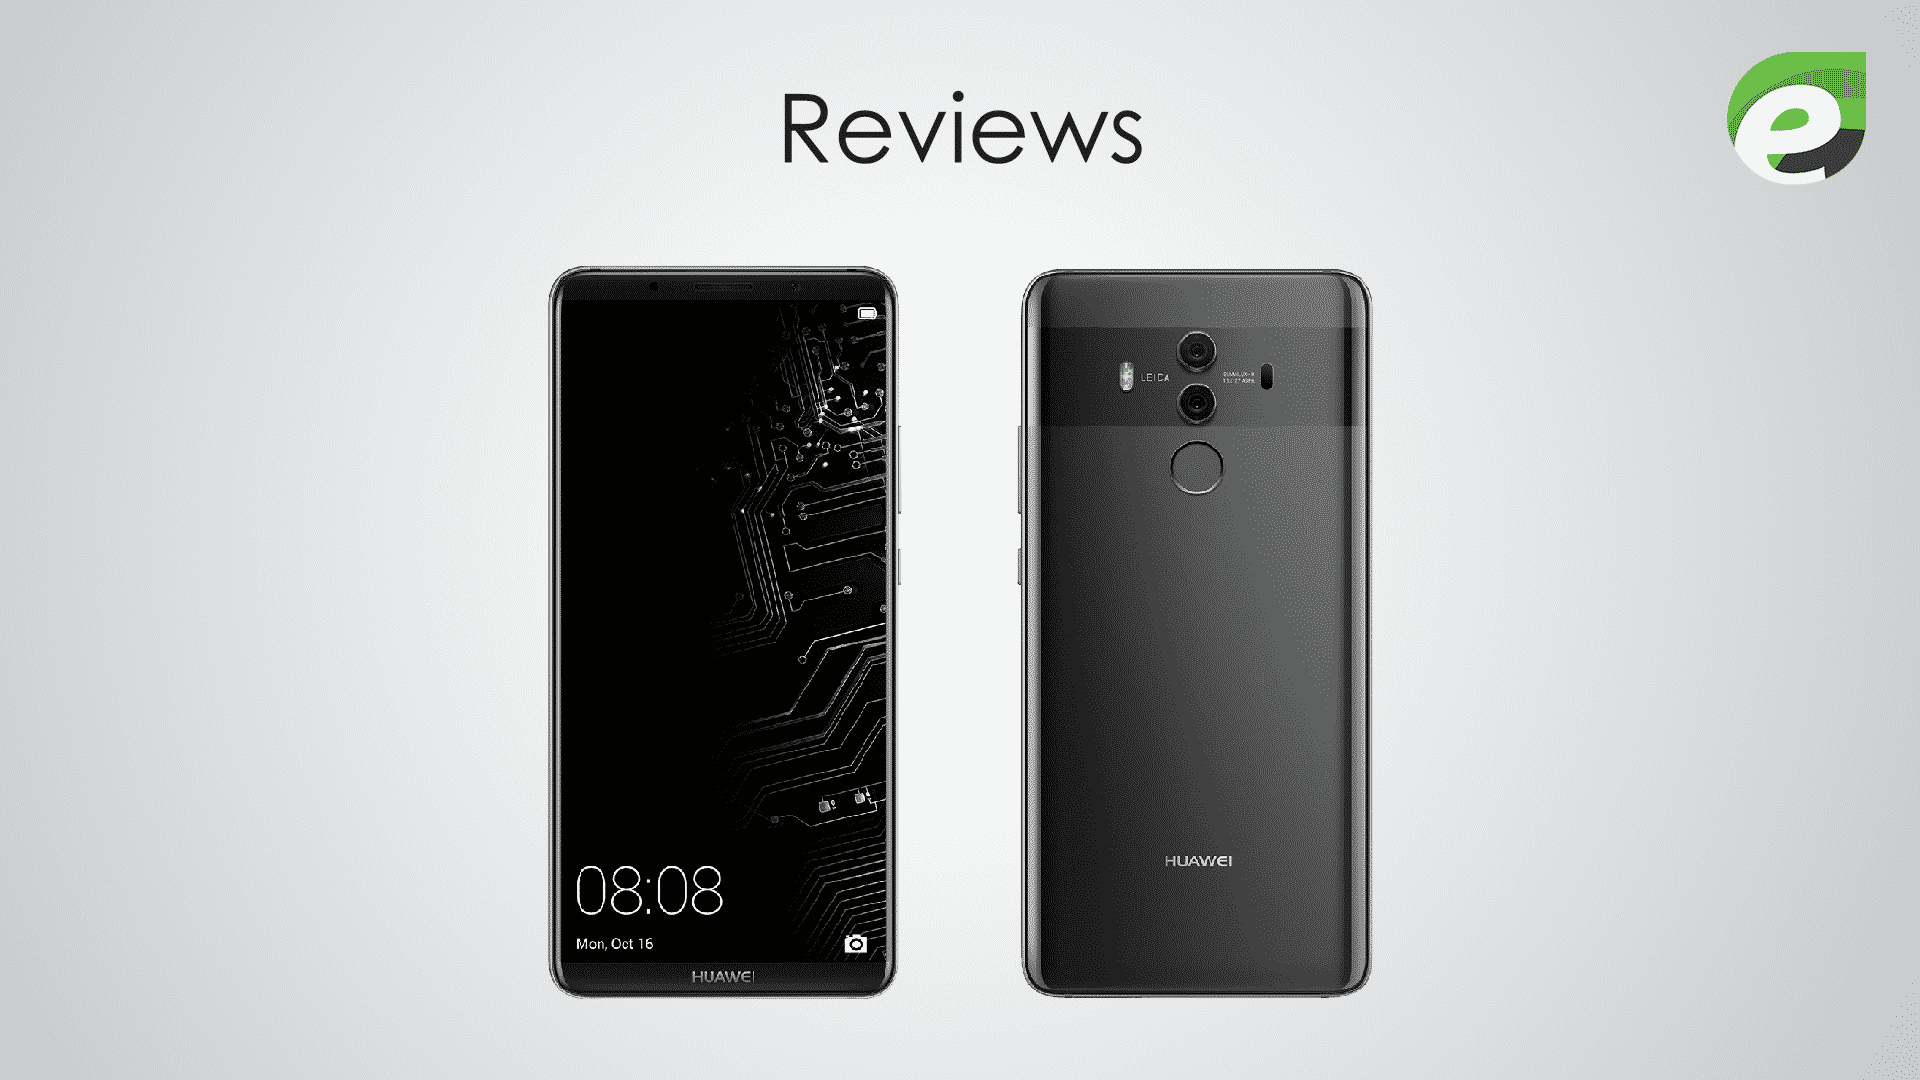 huawei mate 10 pro- reviews